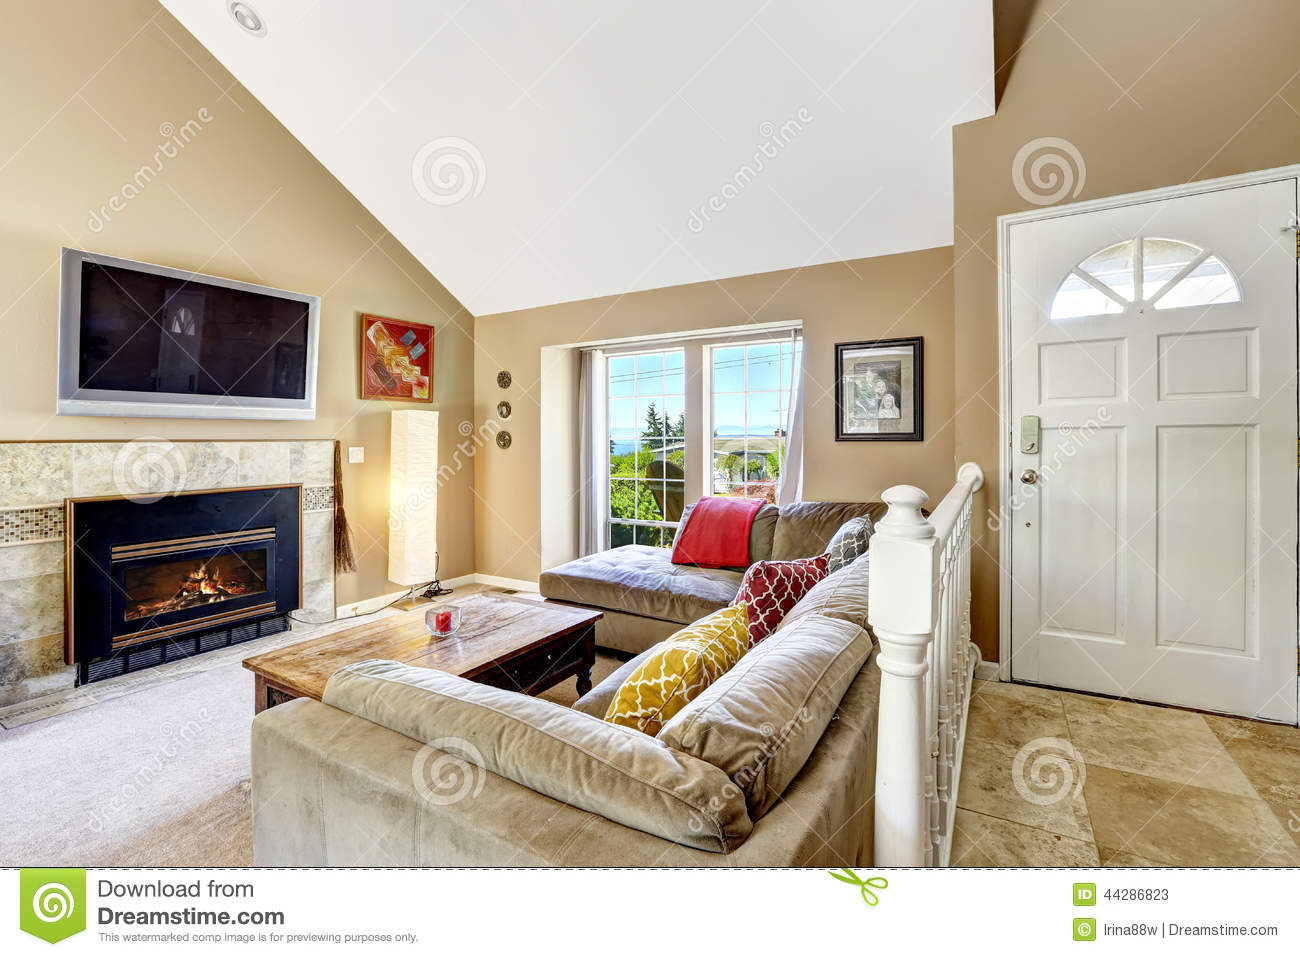 House Interior With High Vaulted Ceiling Living Room Firep Stock